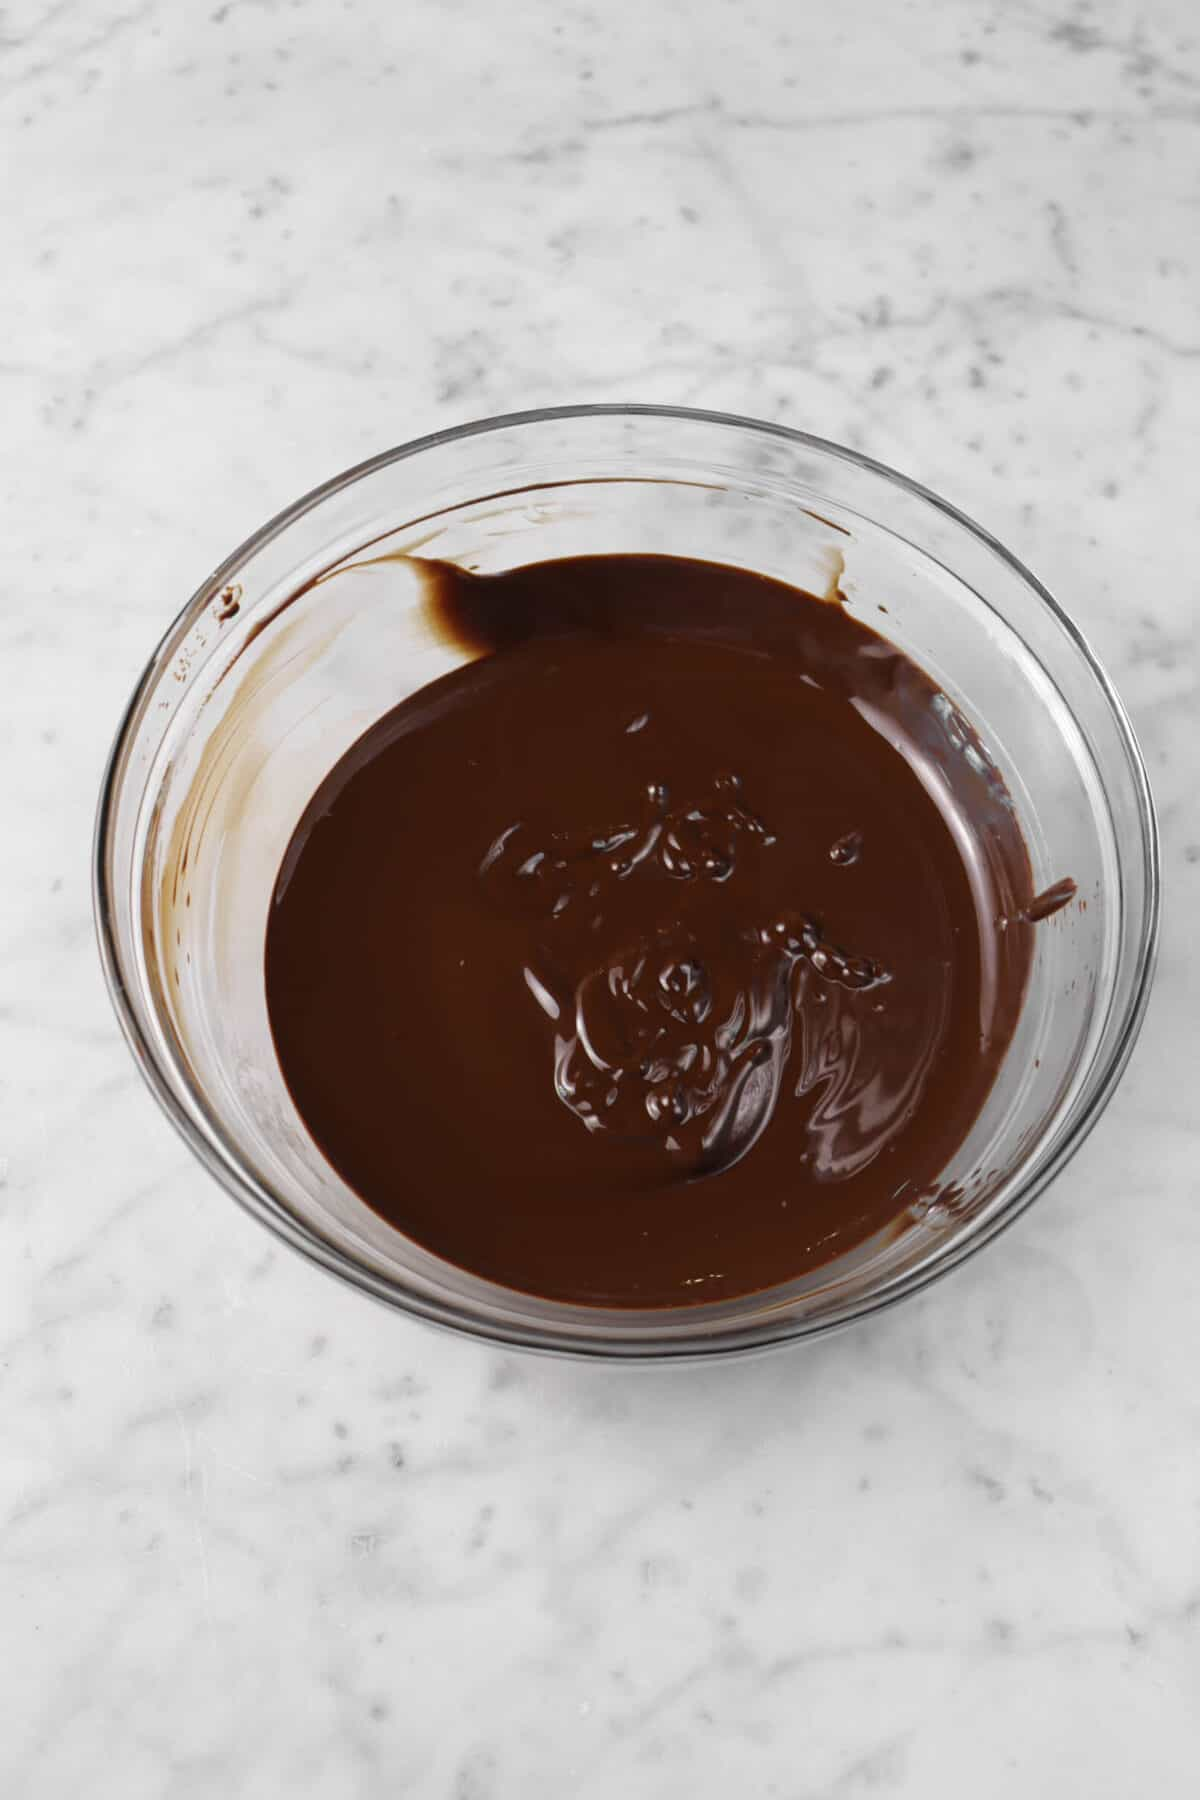 chocolate melted in a glass bowl